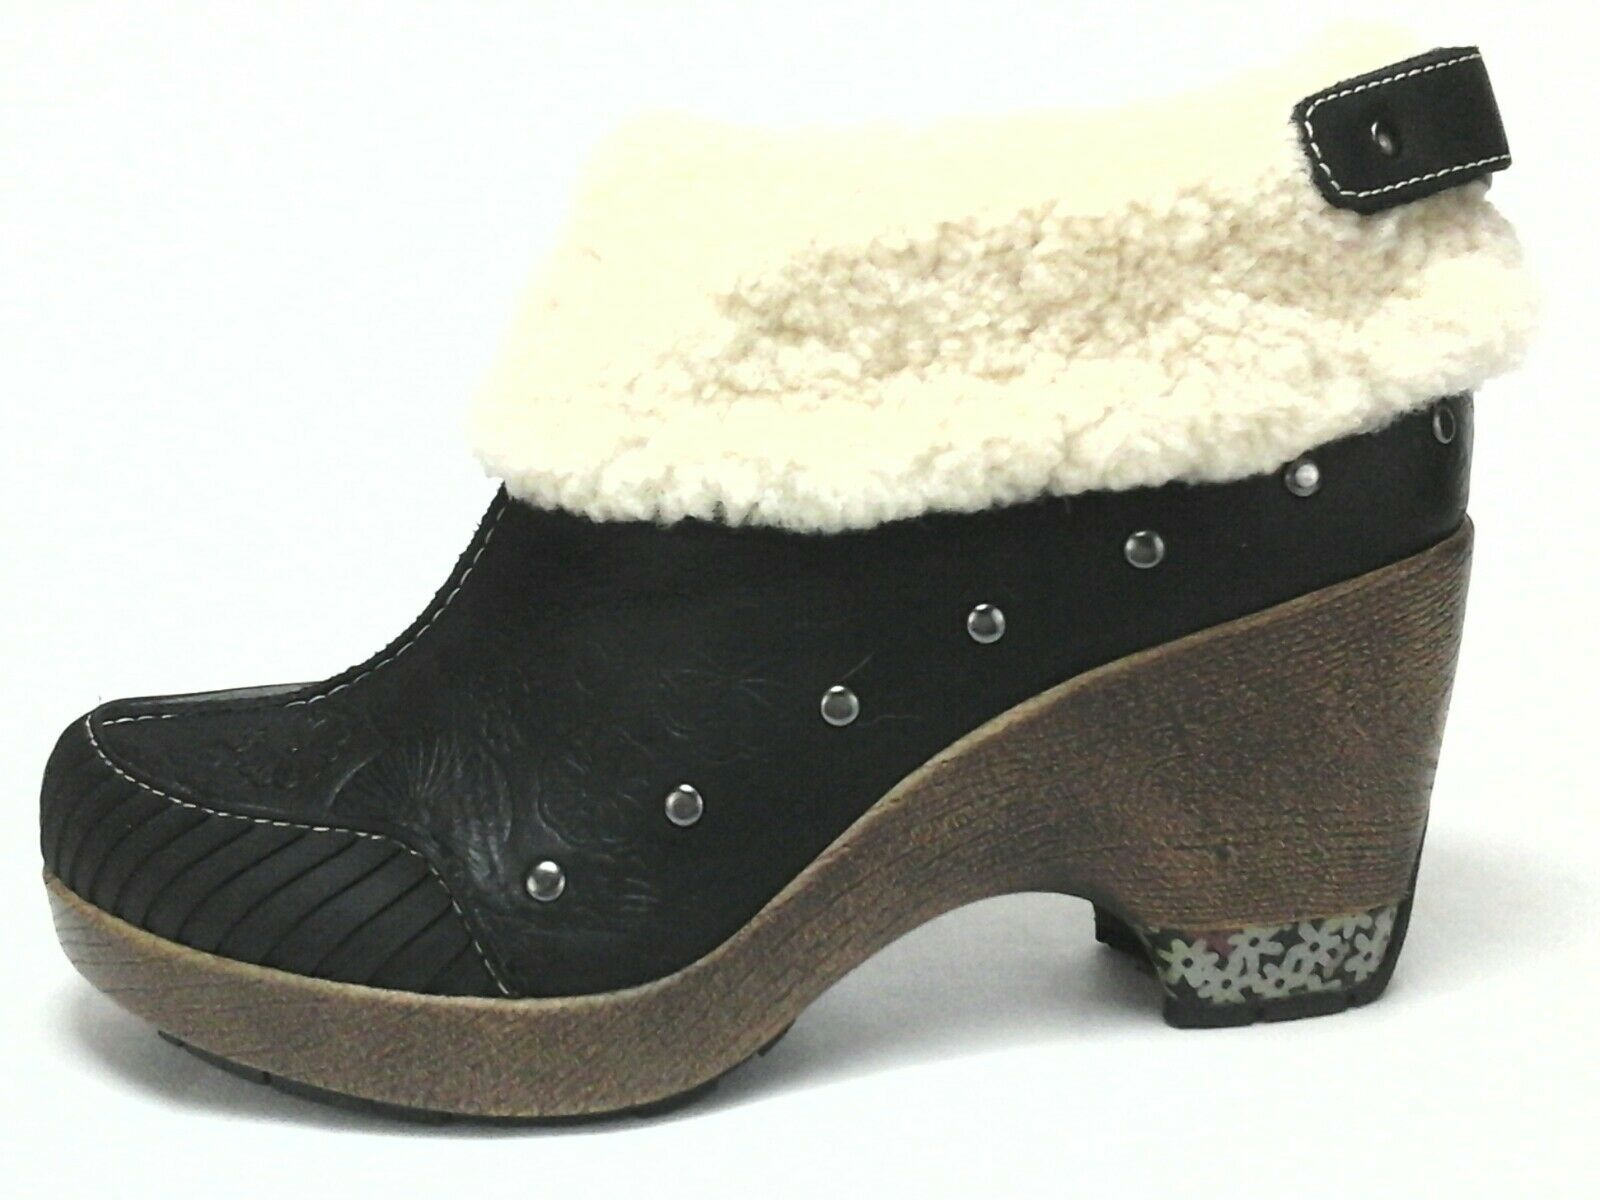 Jambu Holland Withhold Womens Leather Ankle Boots Black with Sherpa US 6.5